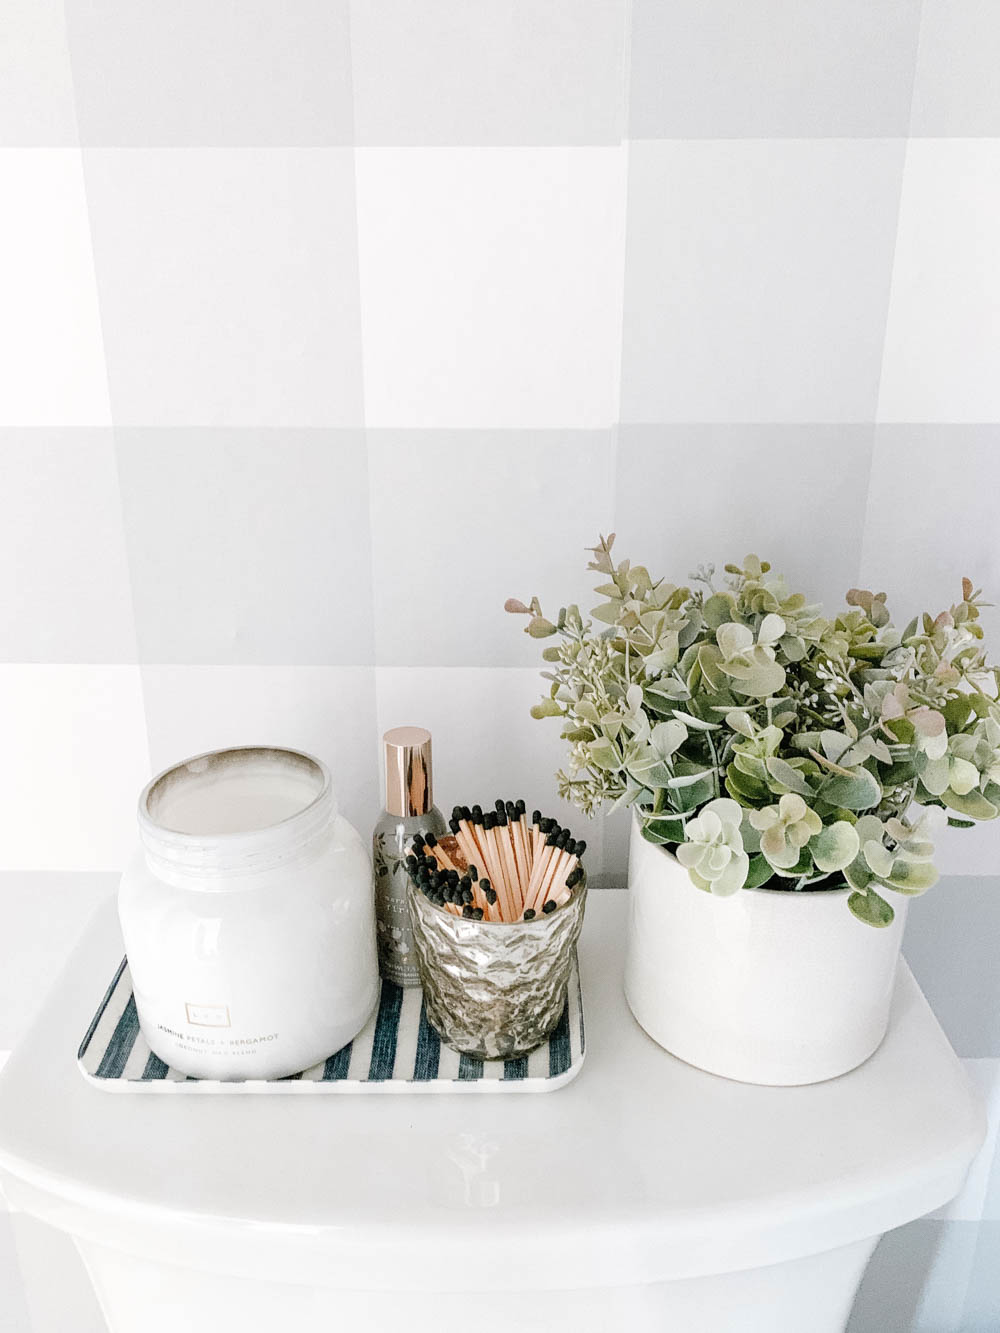 Pretty little bathroom details like a scented candle, matches in a mercury glass jar and a potted plant. #ABlissfulNest #bathroom #bathroomdesign